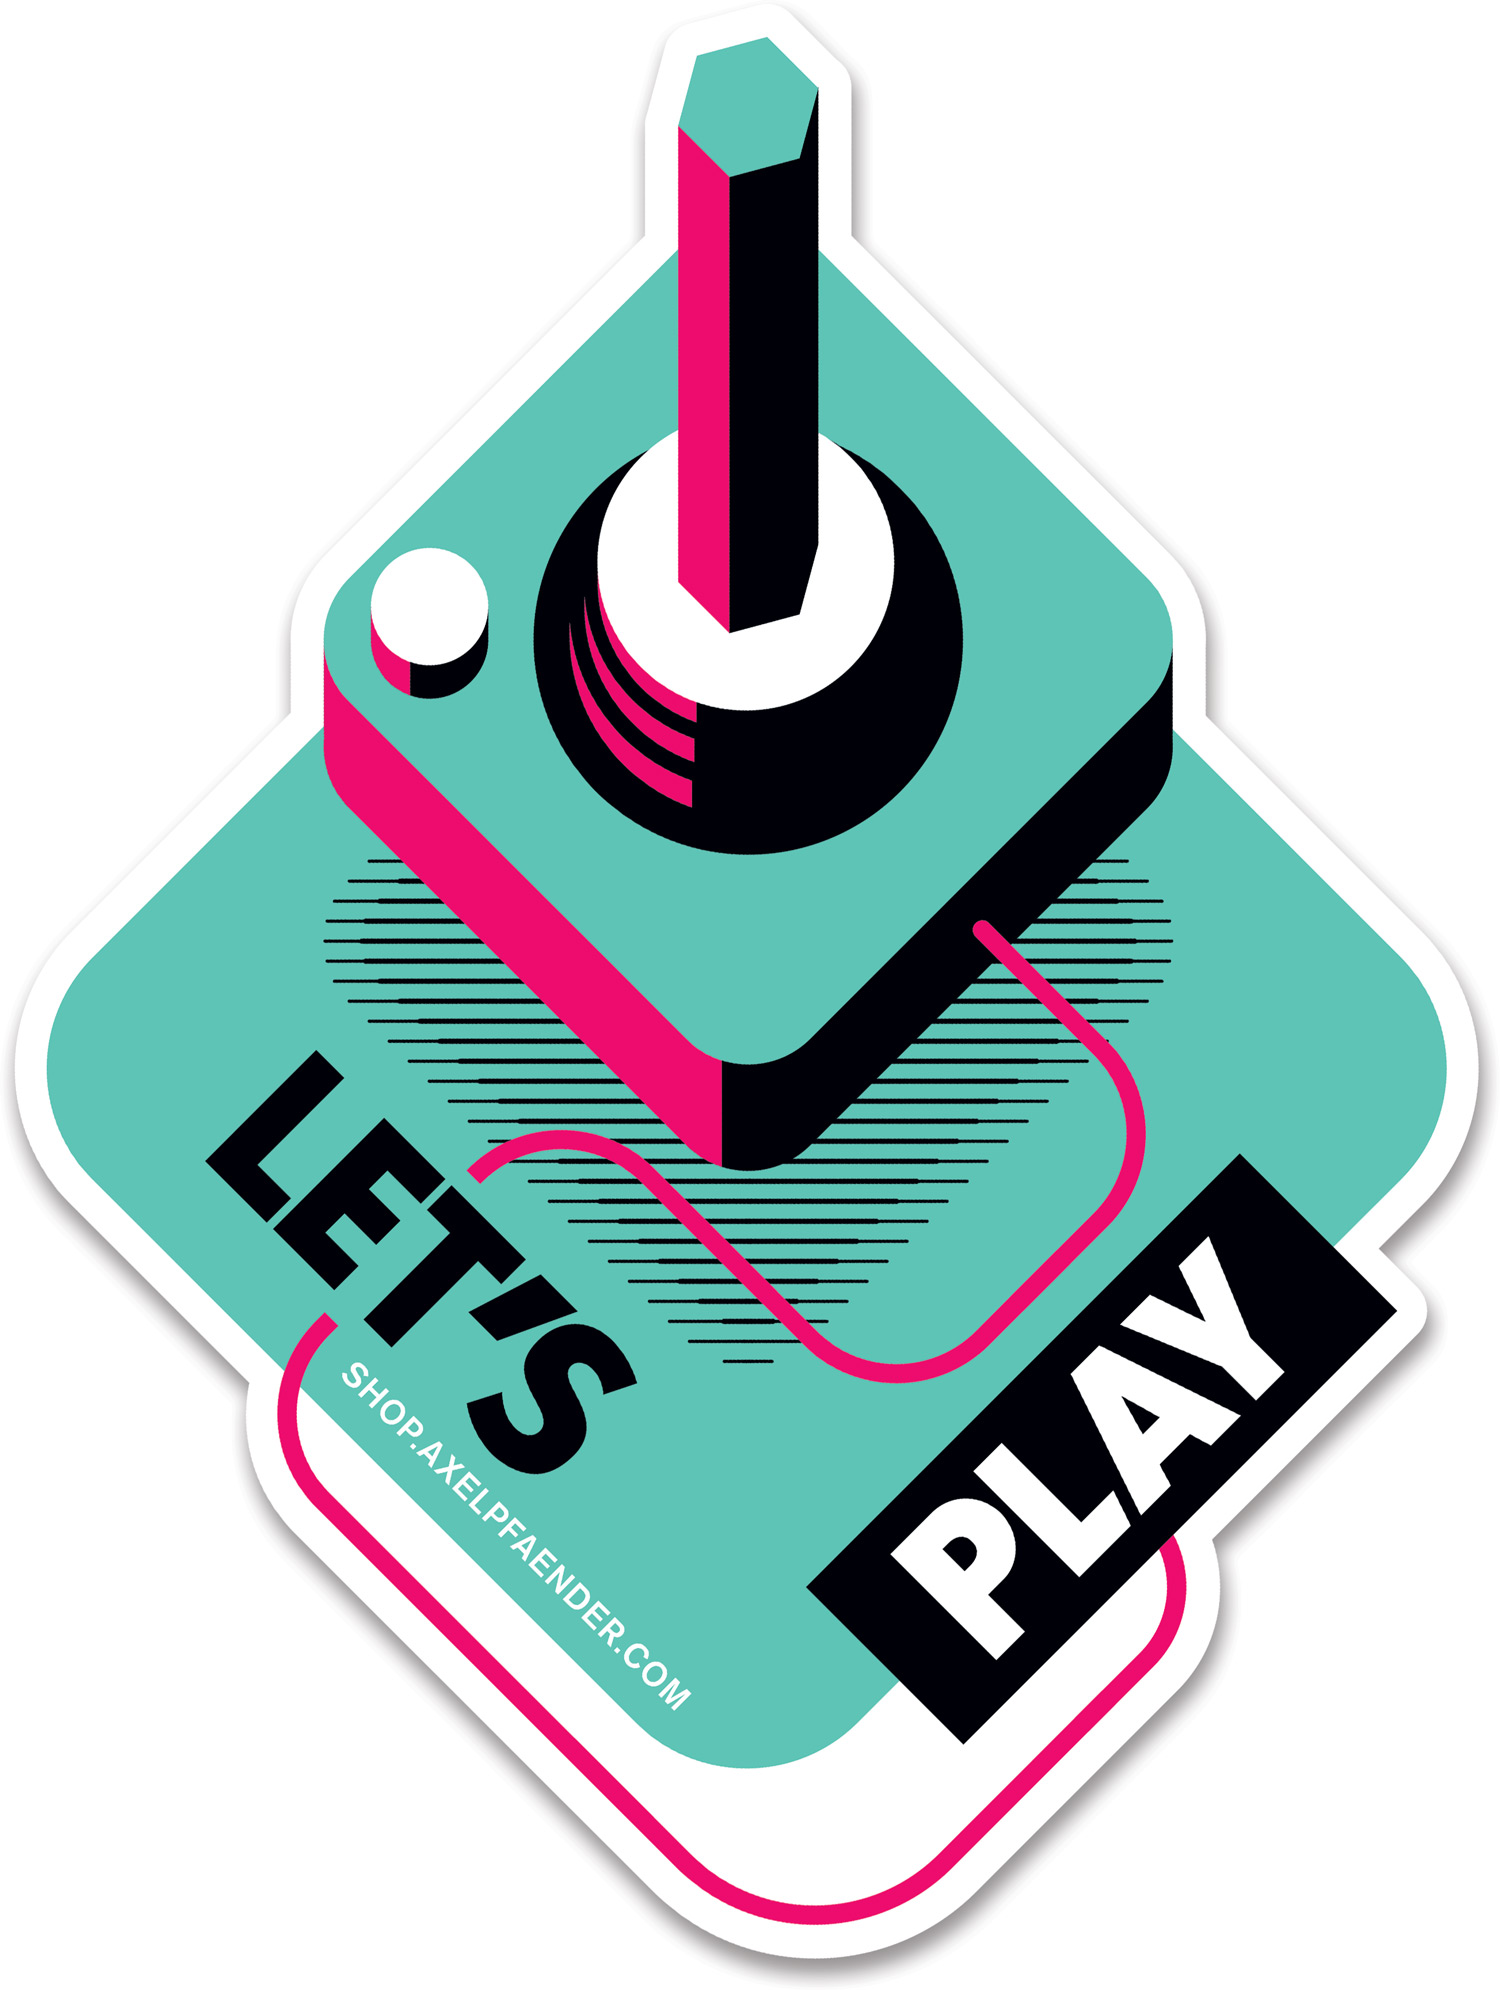 Let'S Play by Axel Pfaender. Retro Atari Joystick Design for Sticker.